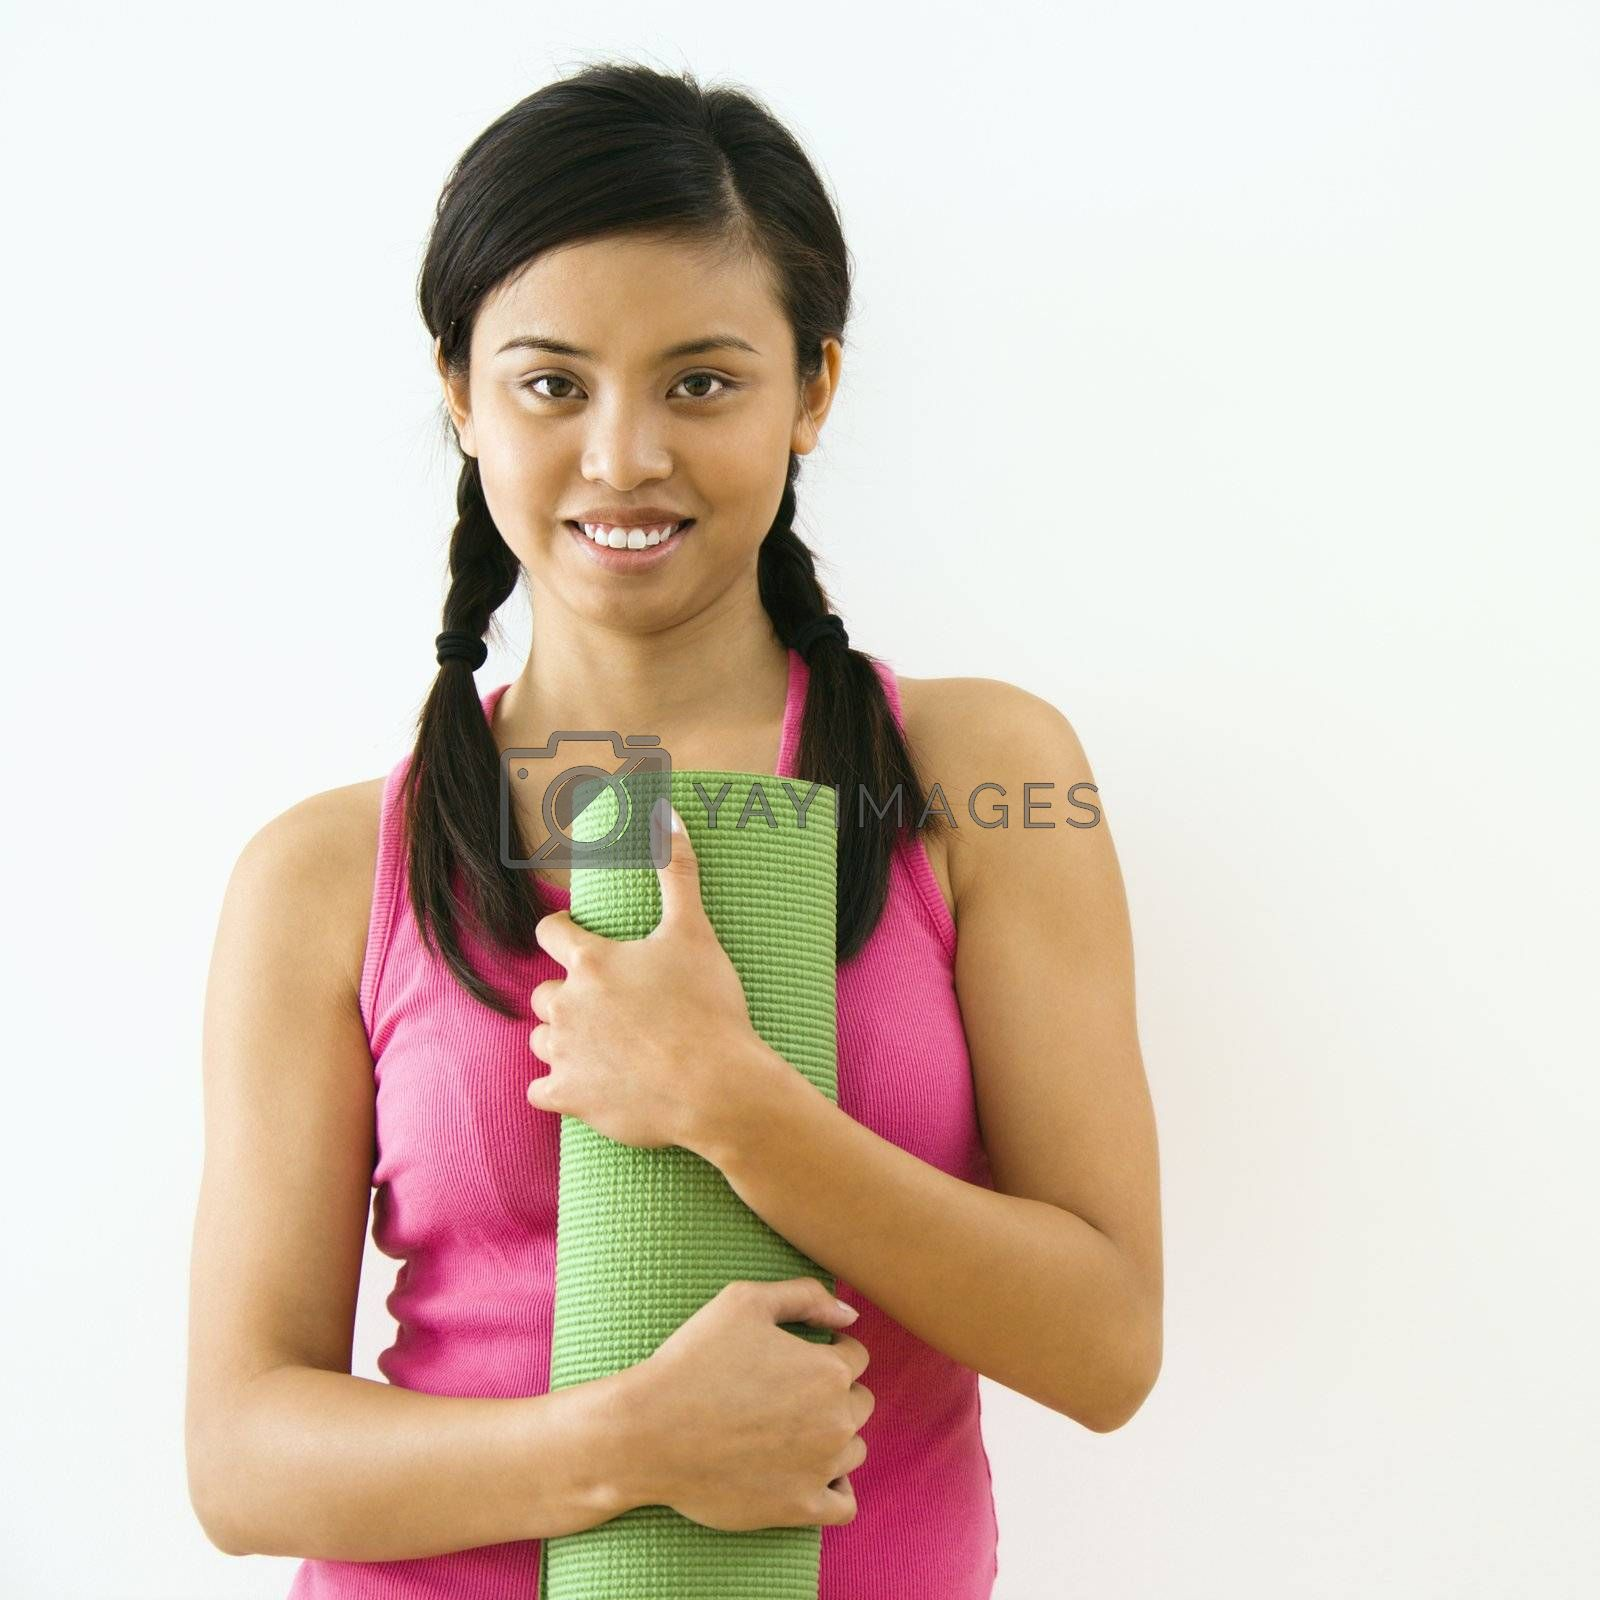 Portrait of smiling young Asian woman holding exercise mat.